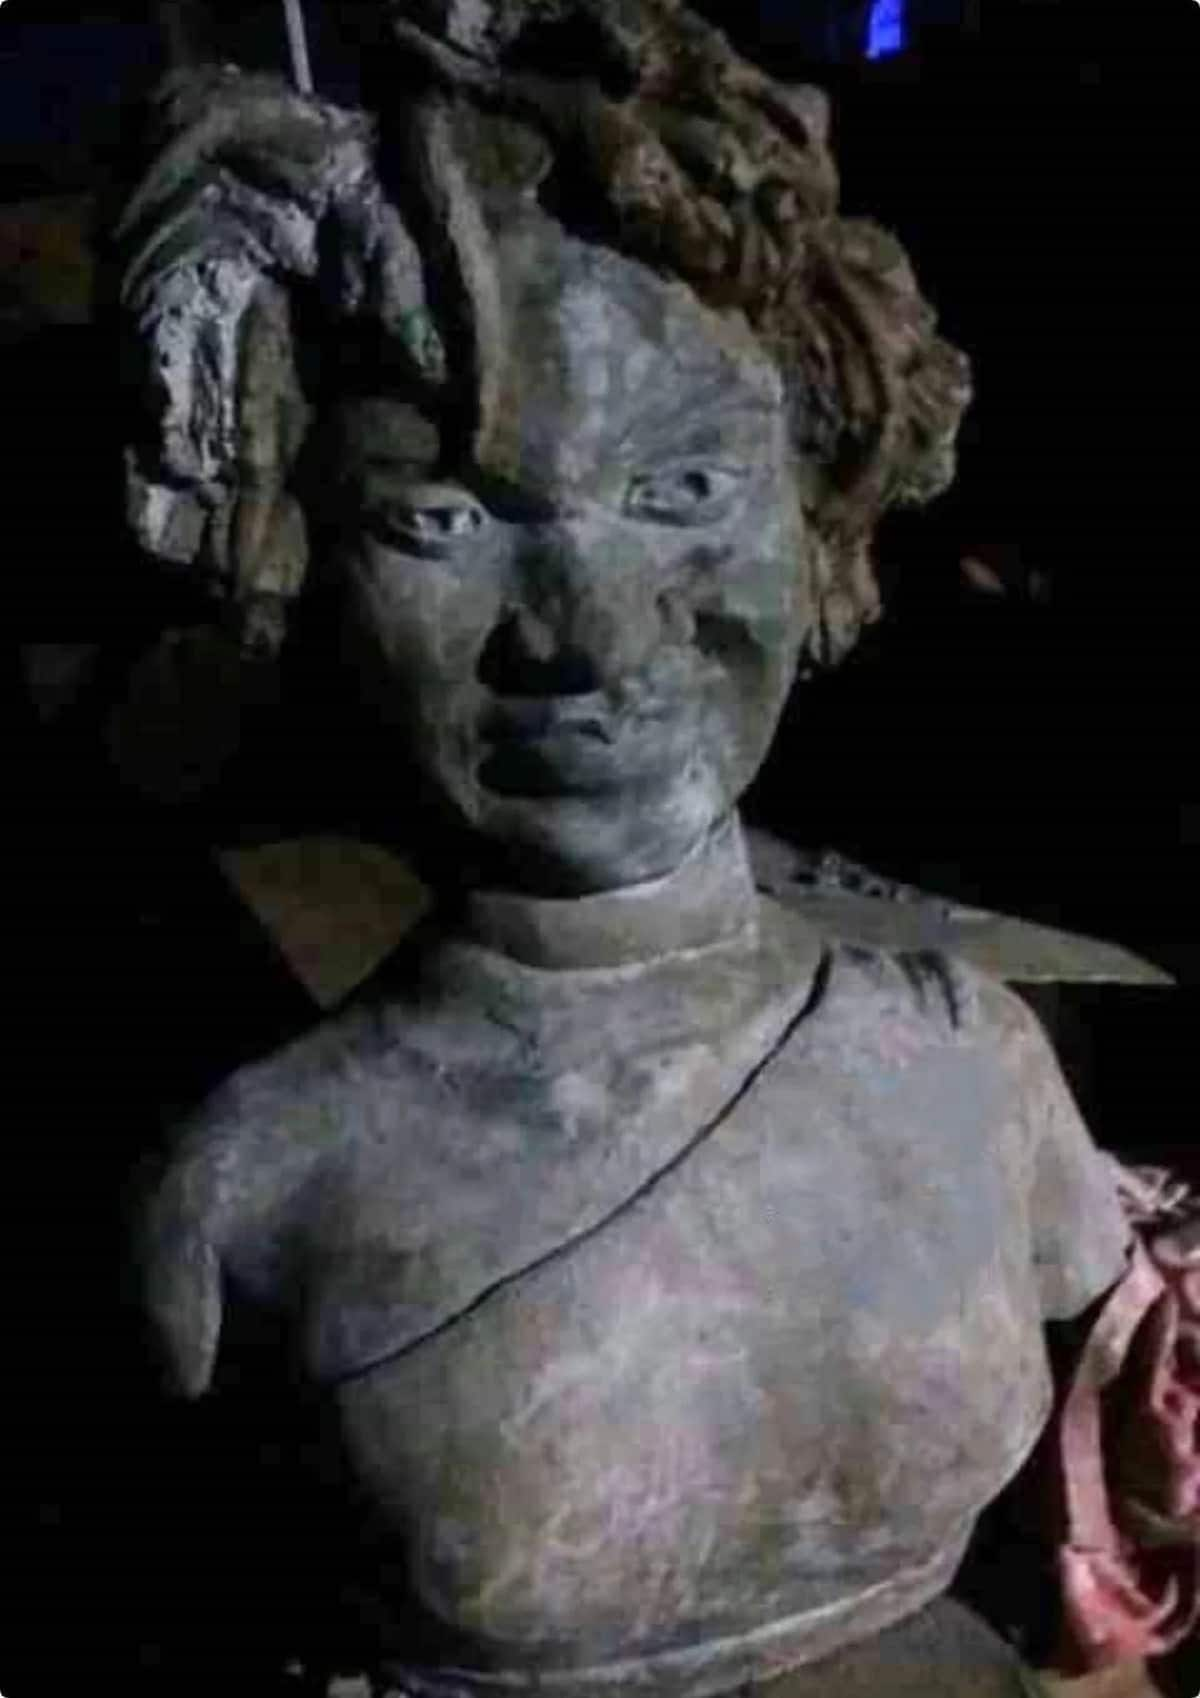 Funny-looking Ebony Reigns statue pops up on the internet